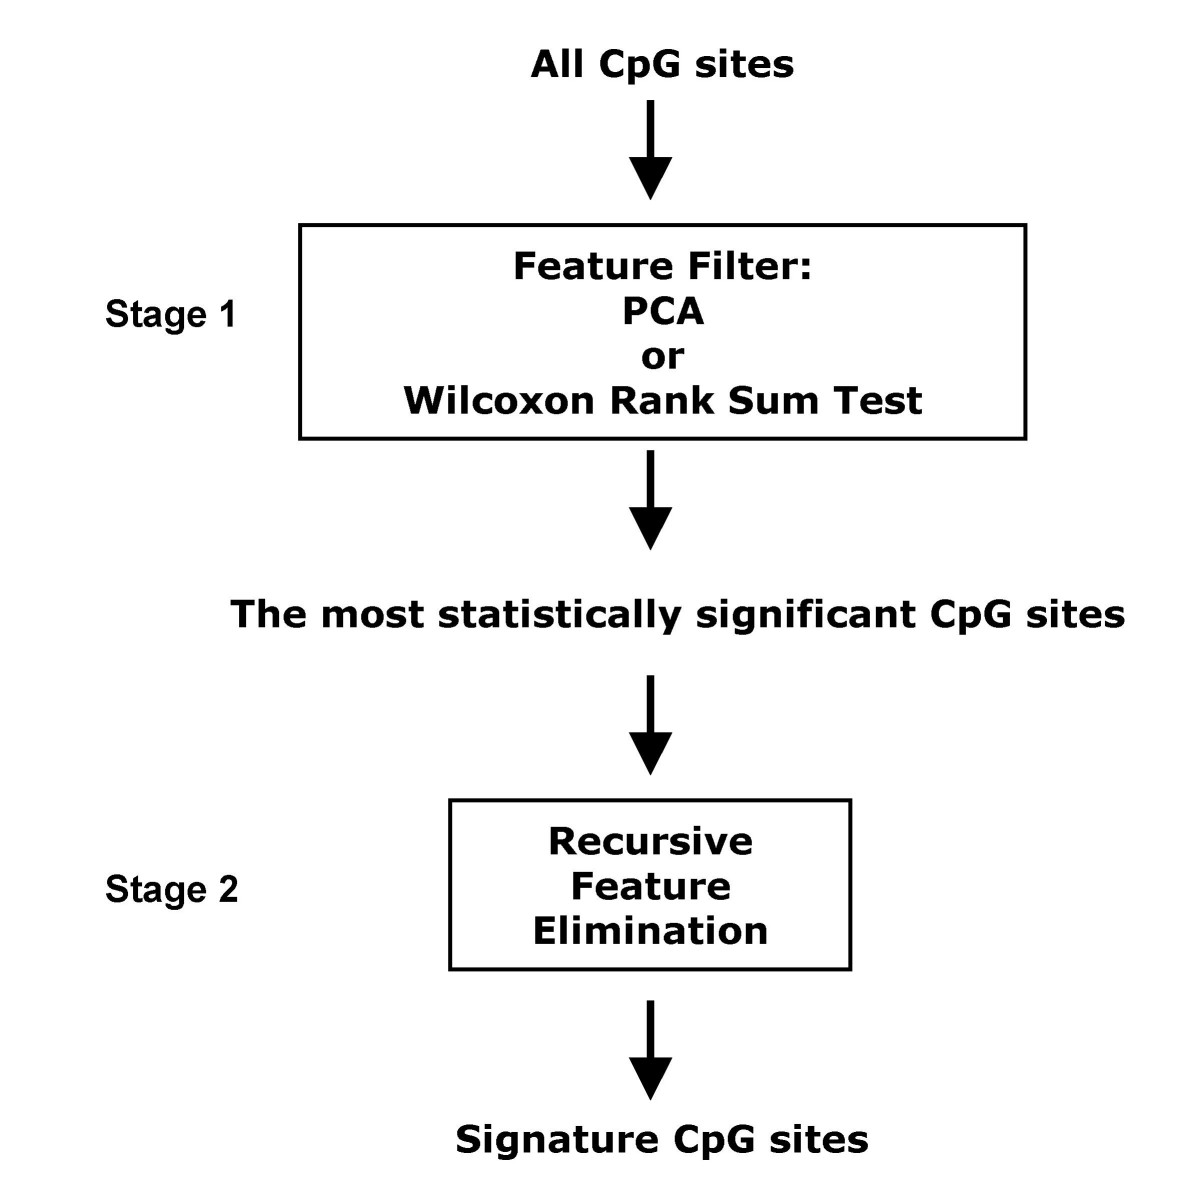 https://static-content.springer.com/image/art%3A10.1186%2F1471-2105-9-457/MediaObjects/12859_2008_Article_2442_Fig1_HTML.jpg